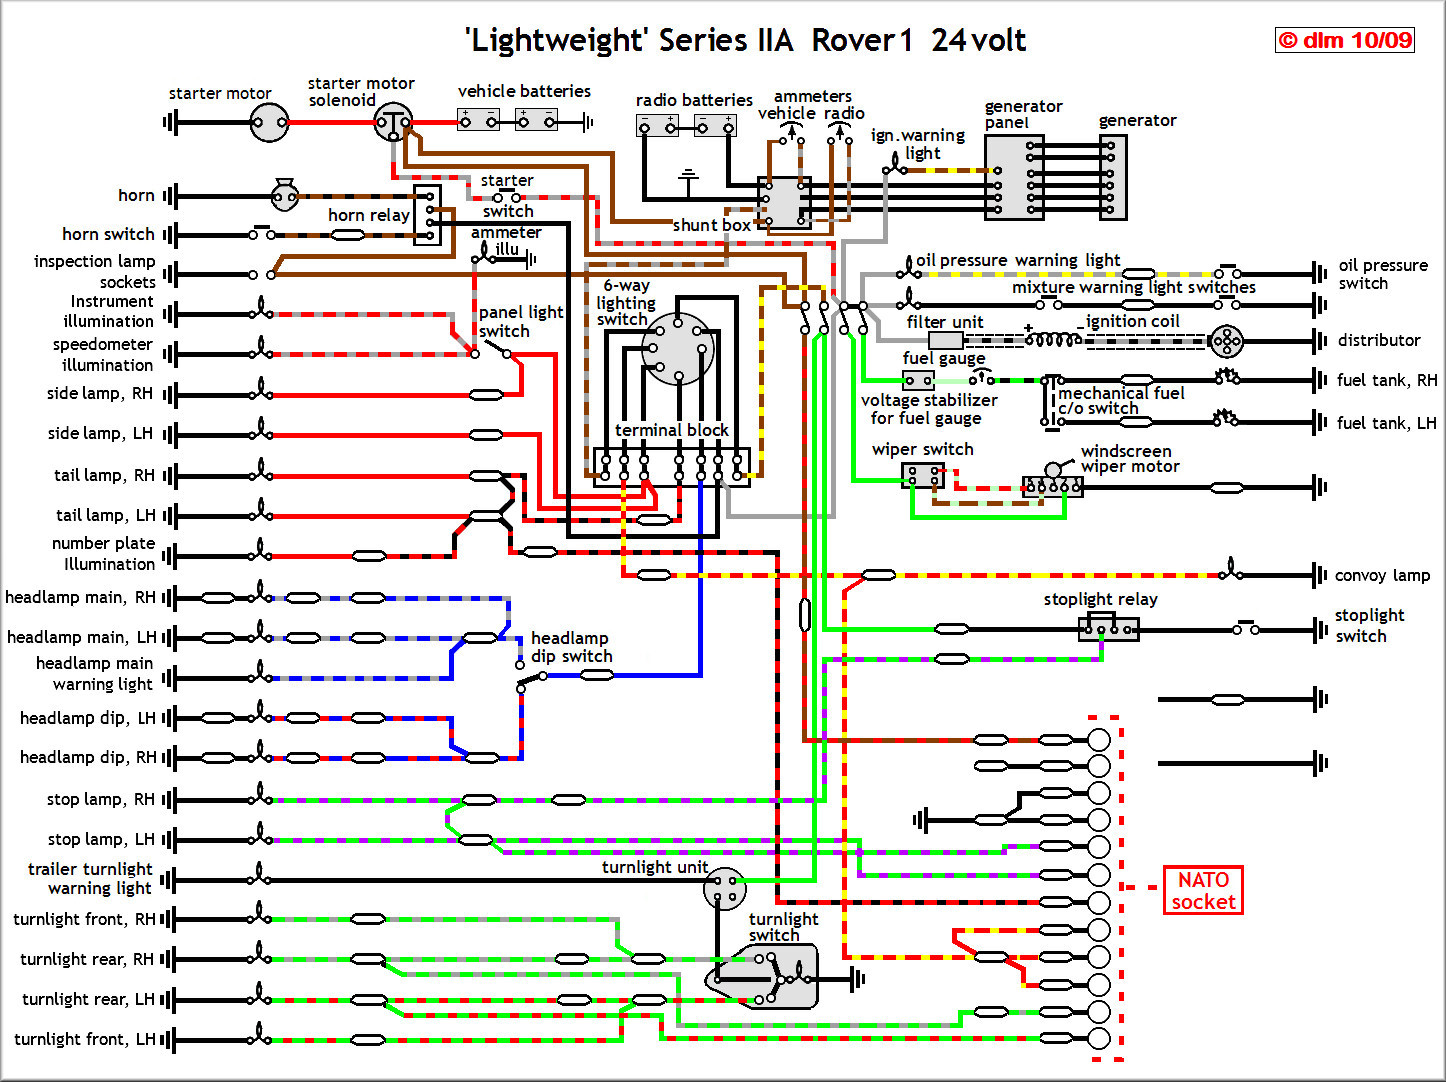 av plugs wiring diagrams land rover electrical wiring diagrams land rover av equipment wiring diagrams #3